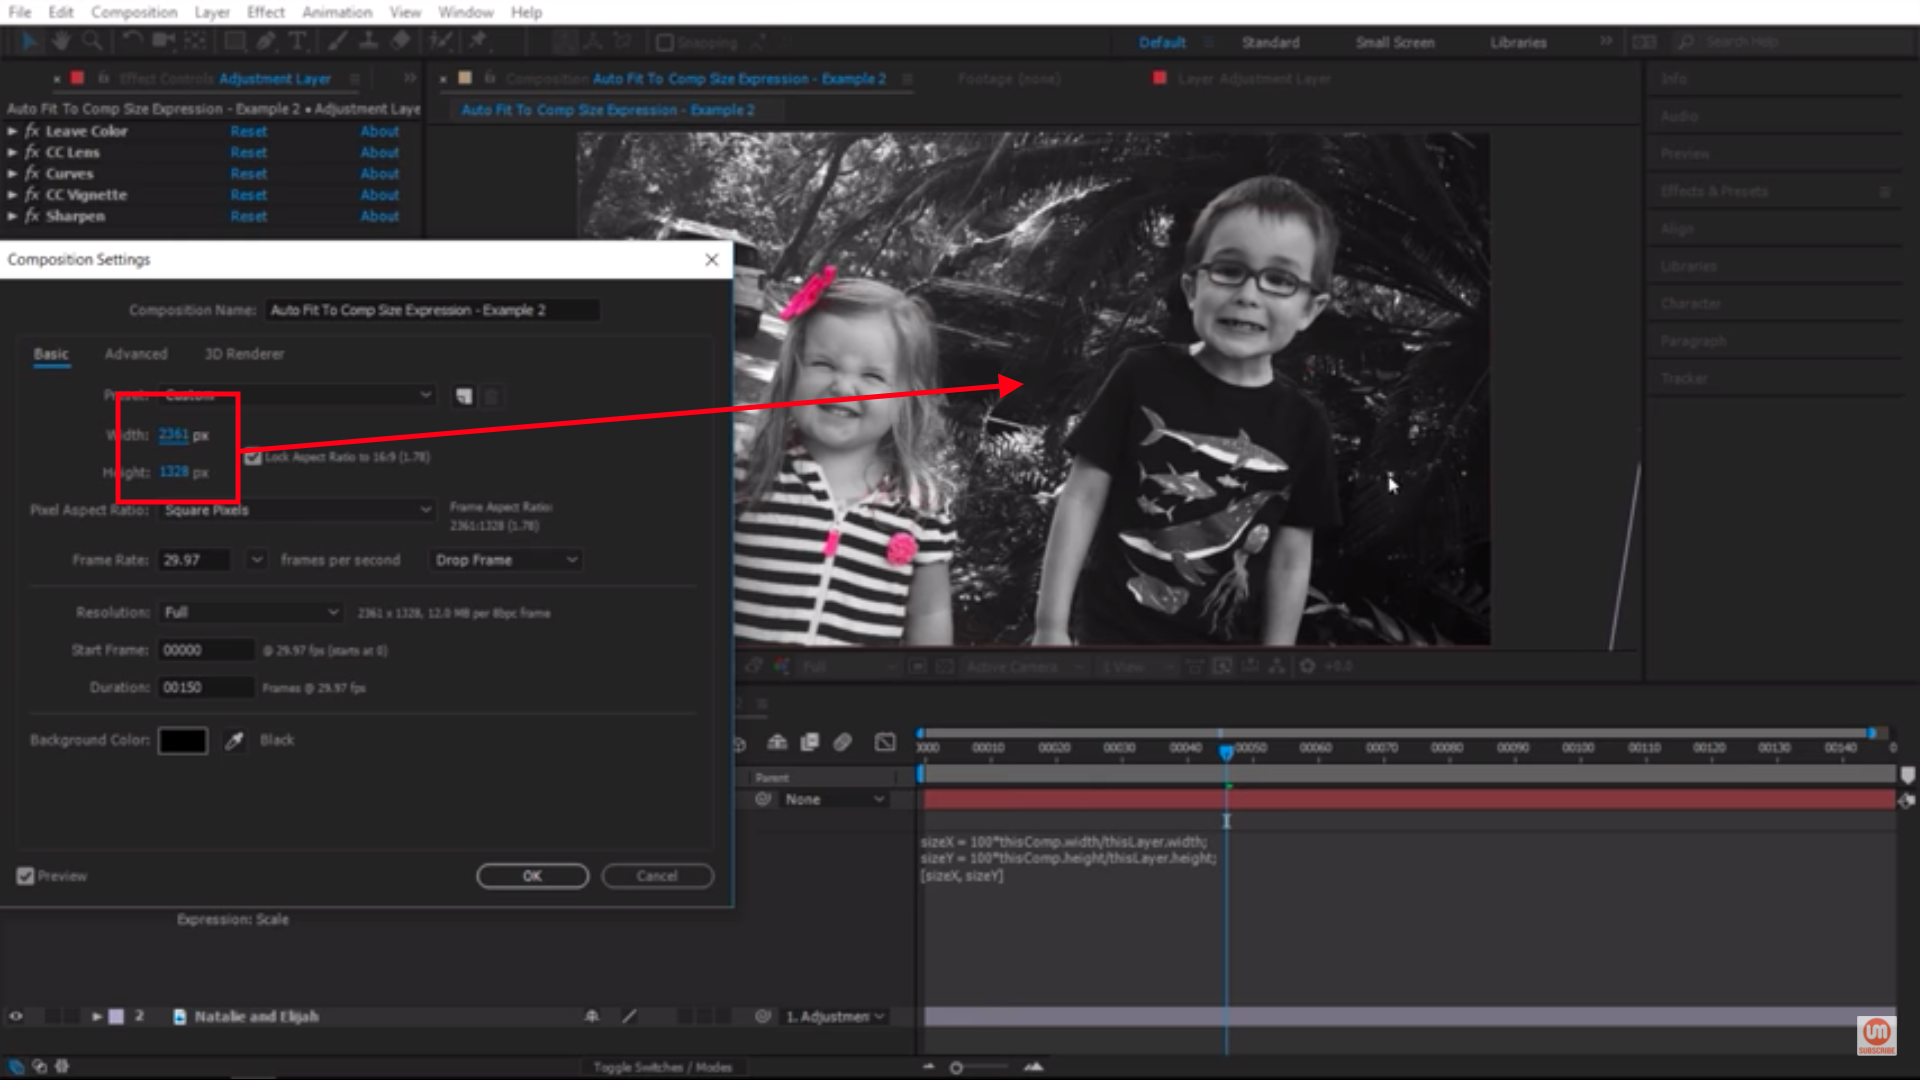 Adjusting Composition Settings in Adobe After Effects